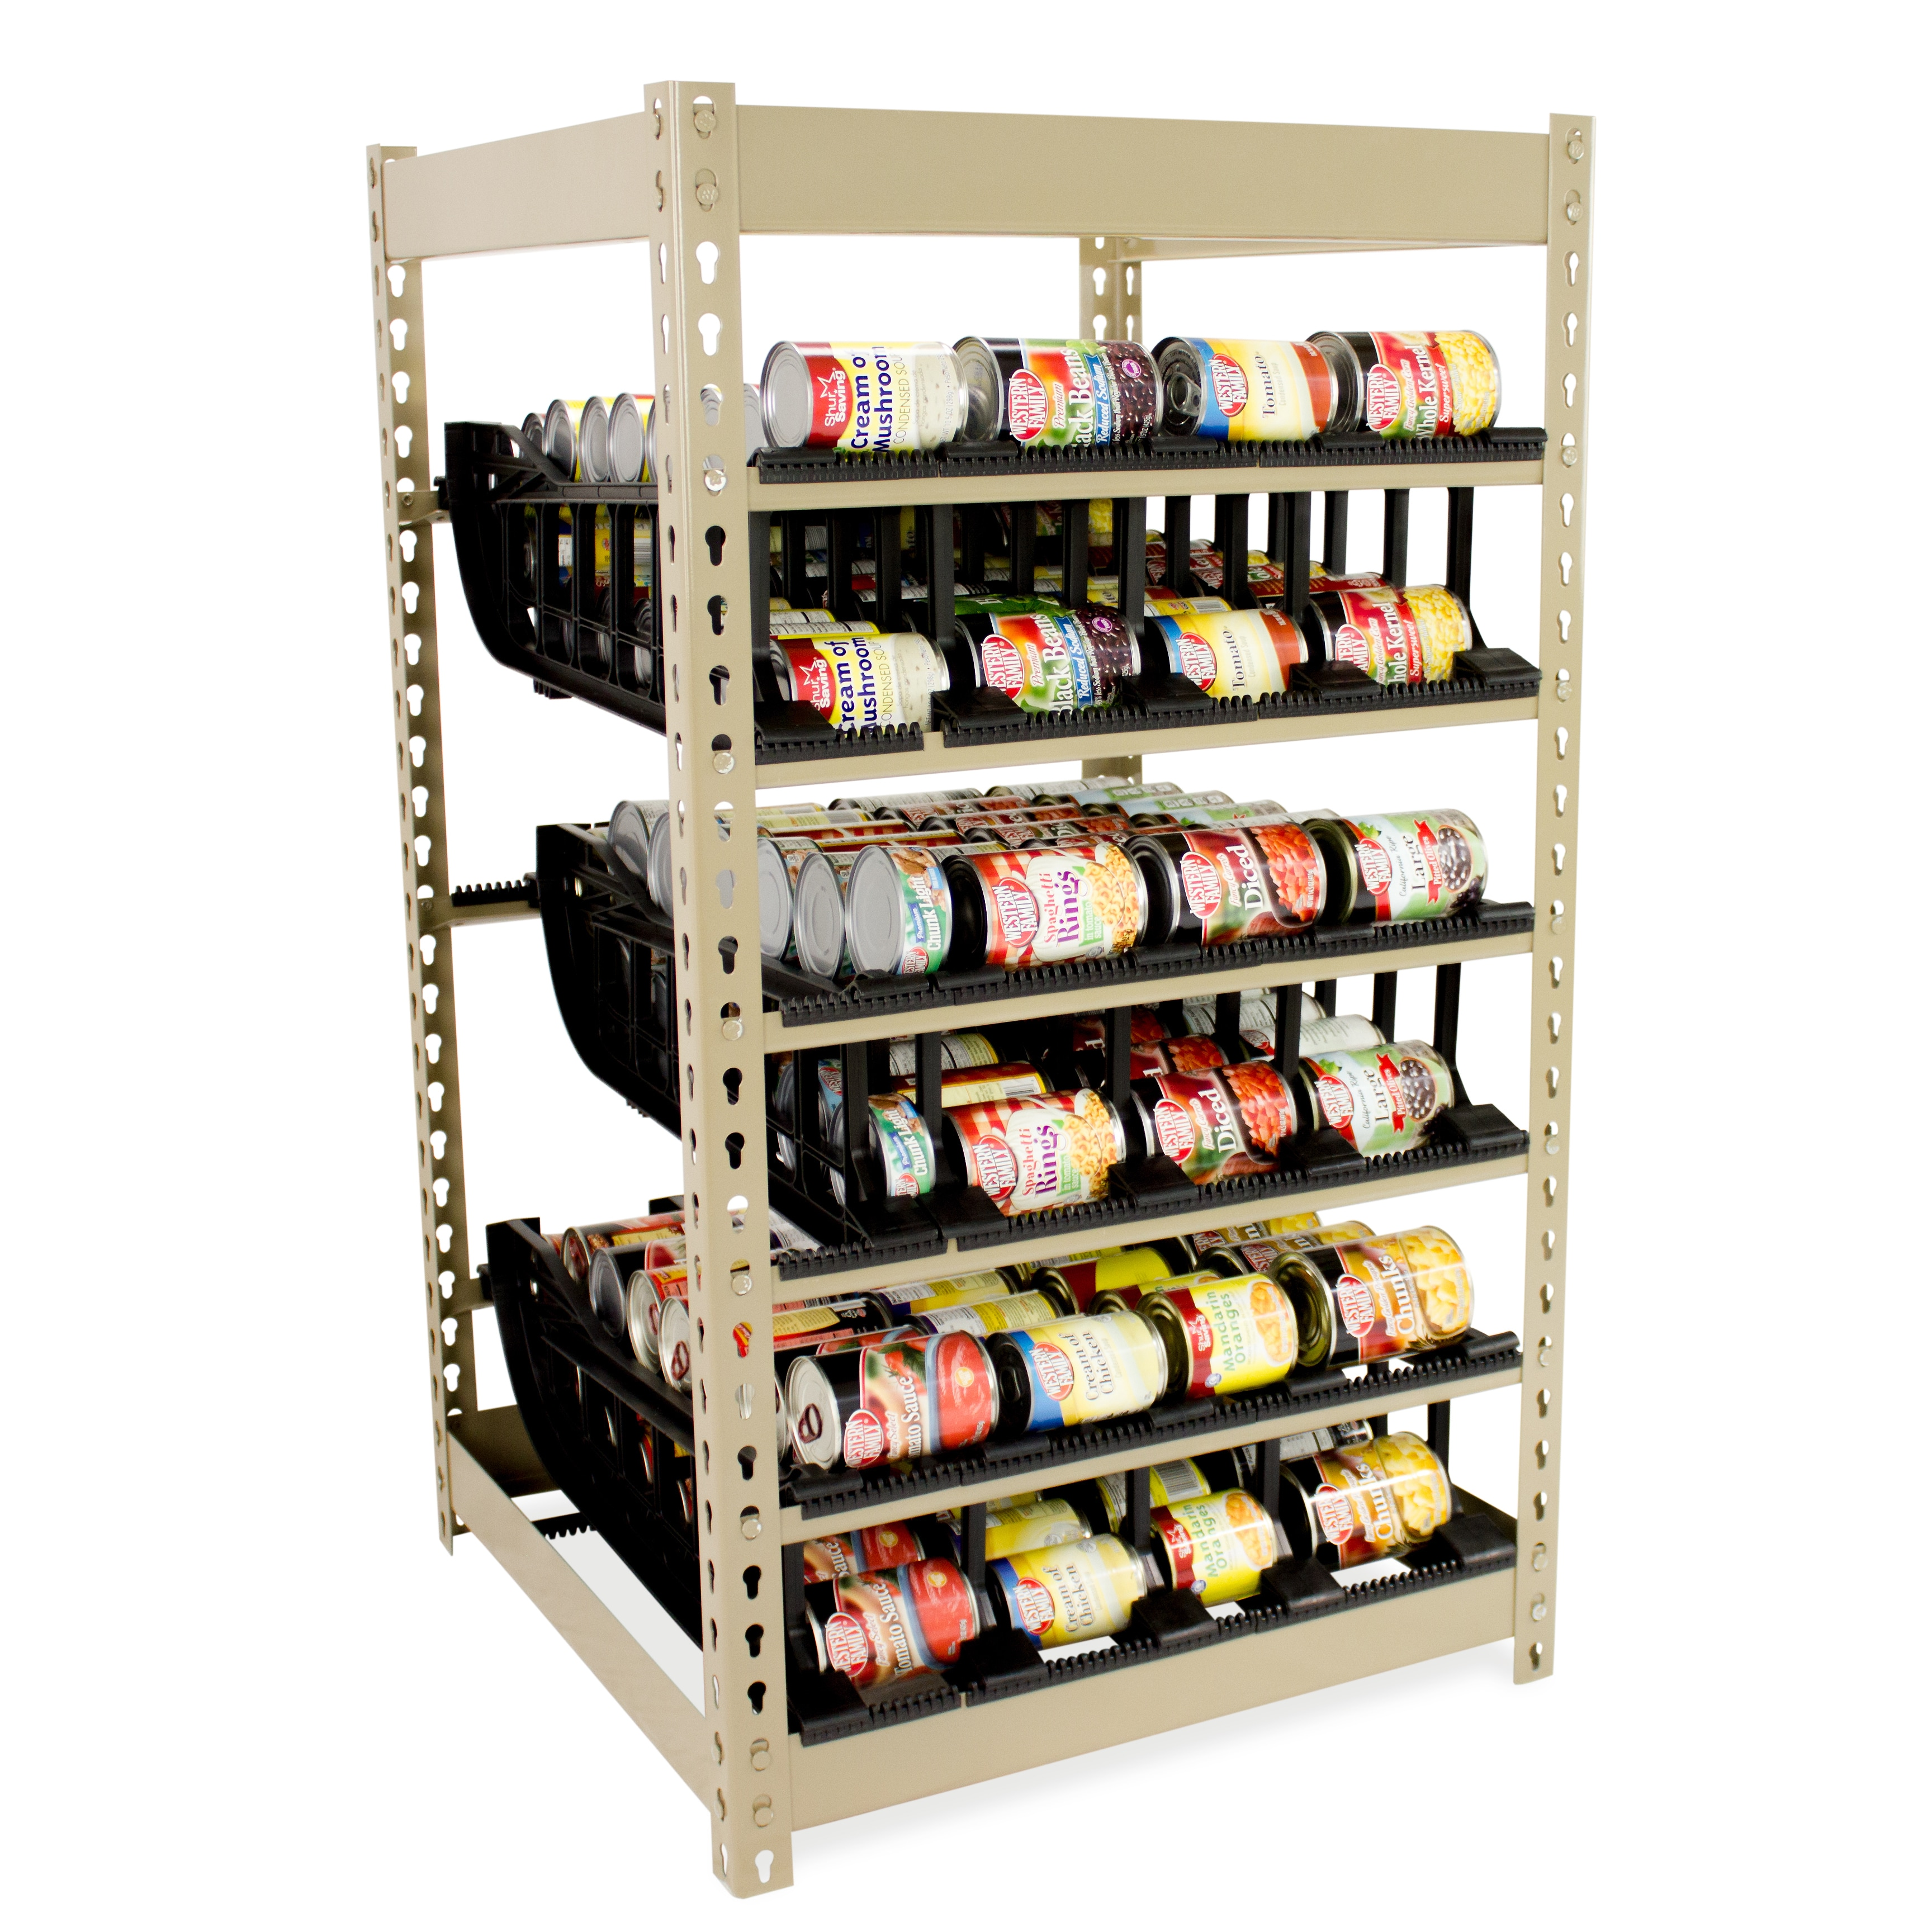 Food Storage Shelf: First-In/First-Out (FIFO) Canned Food Storage Shelf (200